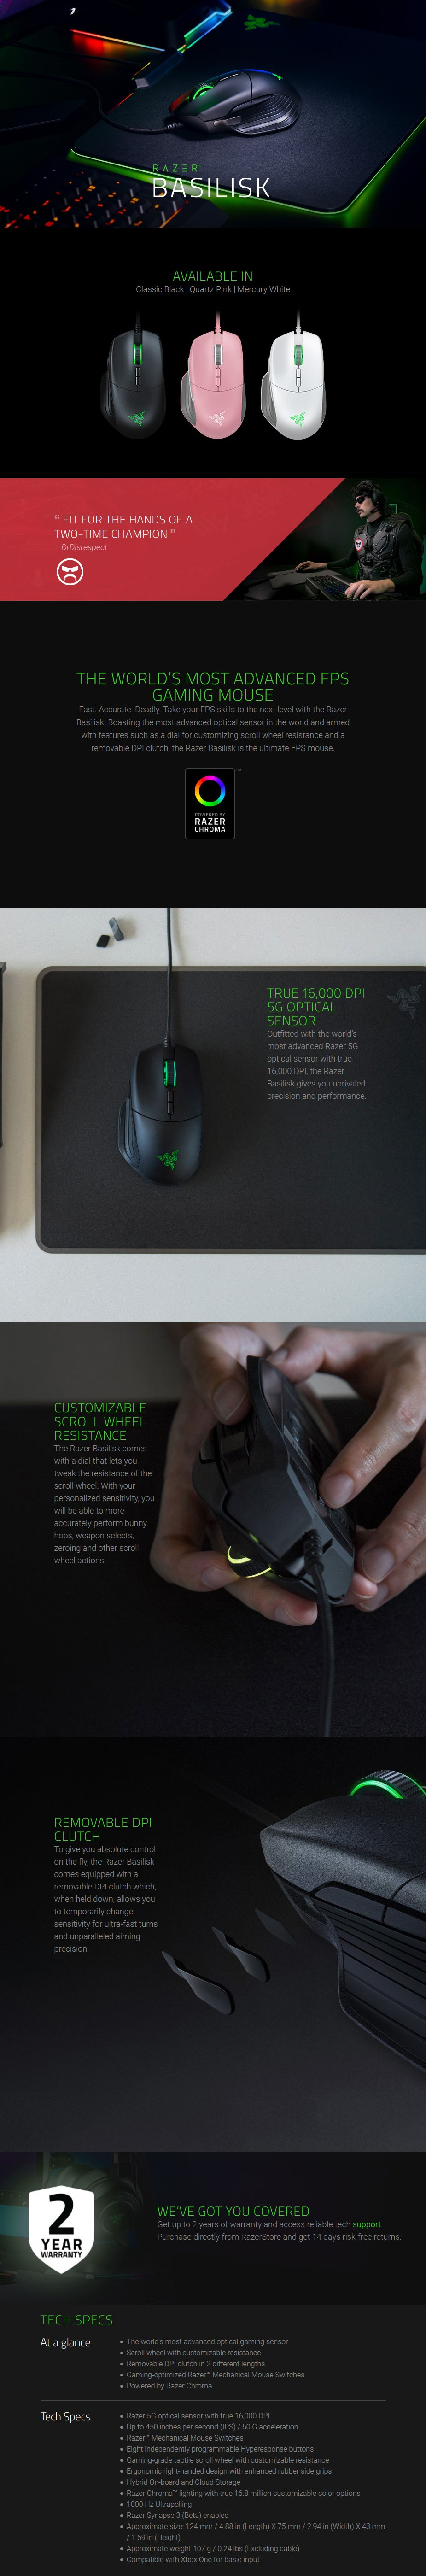 Razer Basilisk Chroma Ergonomic Gaming Mouse - Quartz - Overview 1